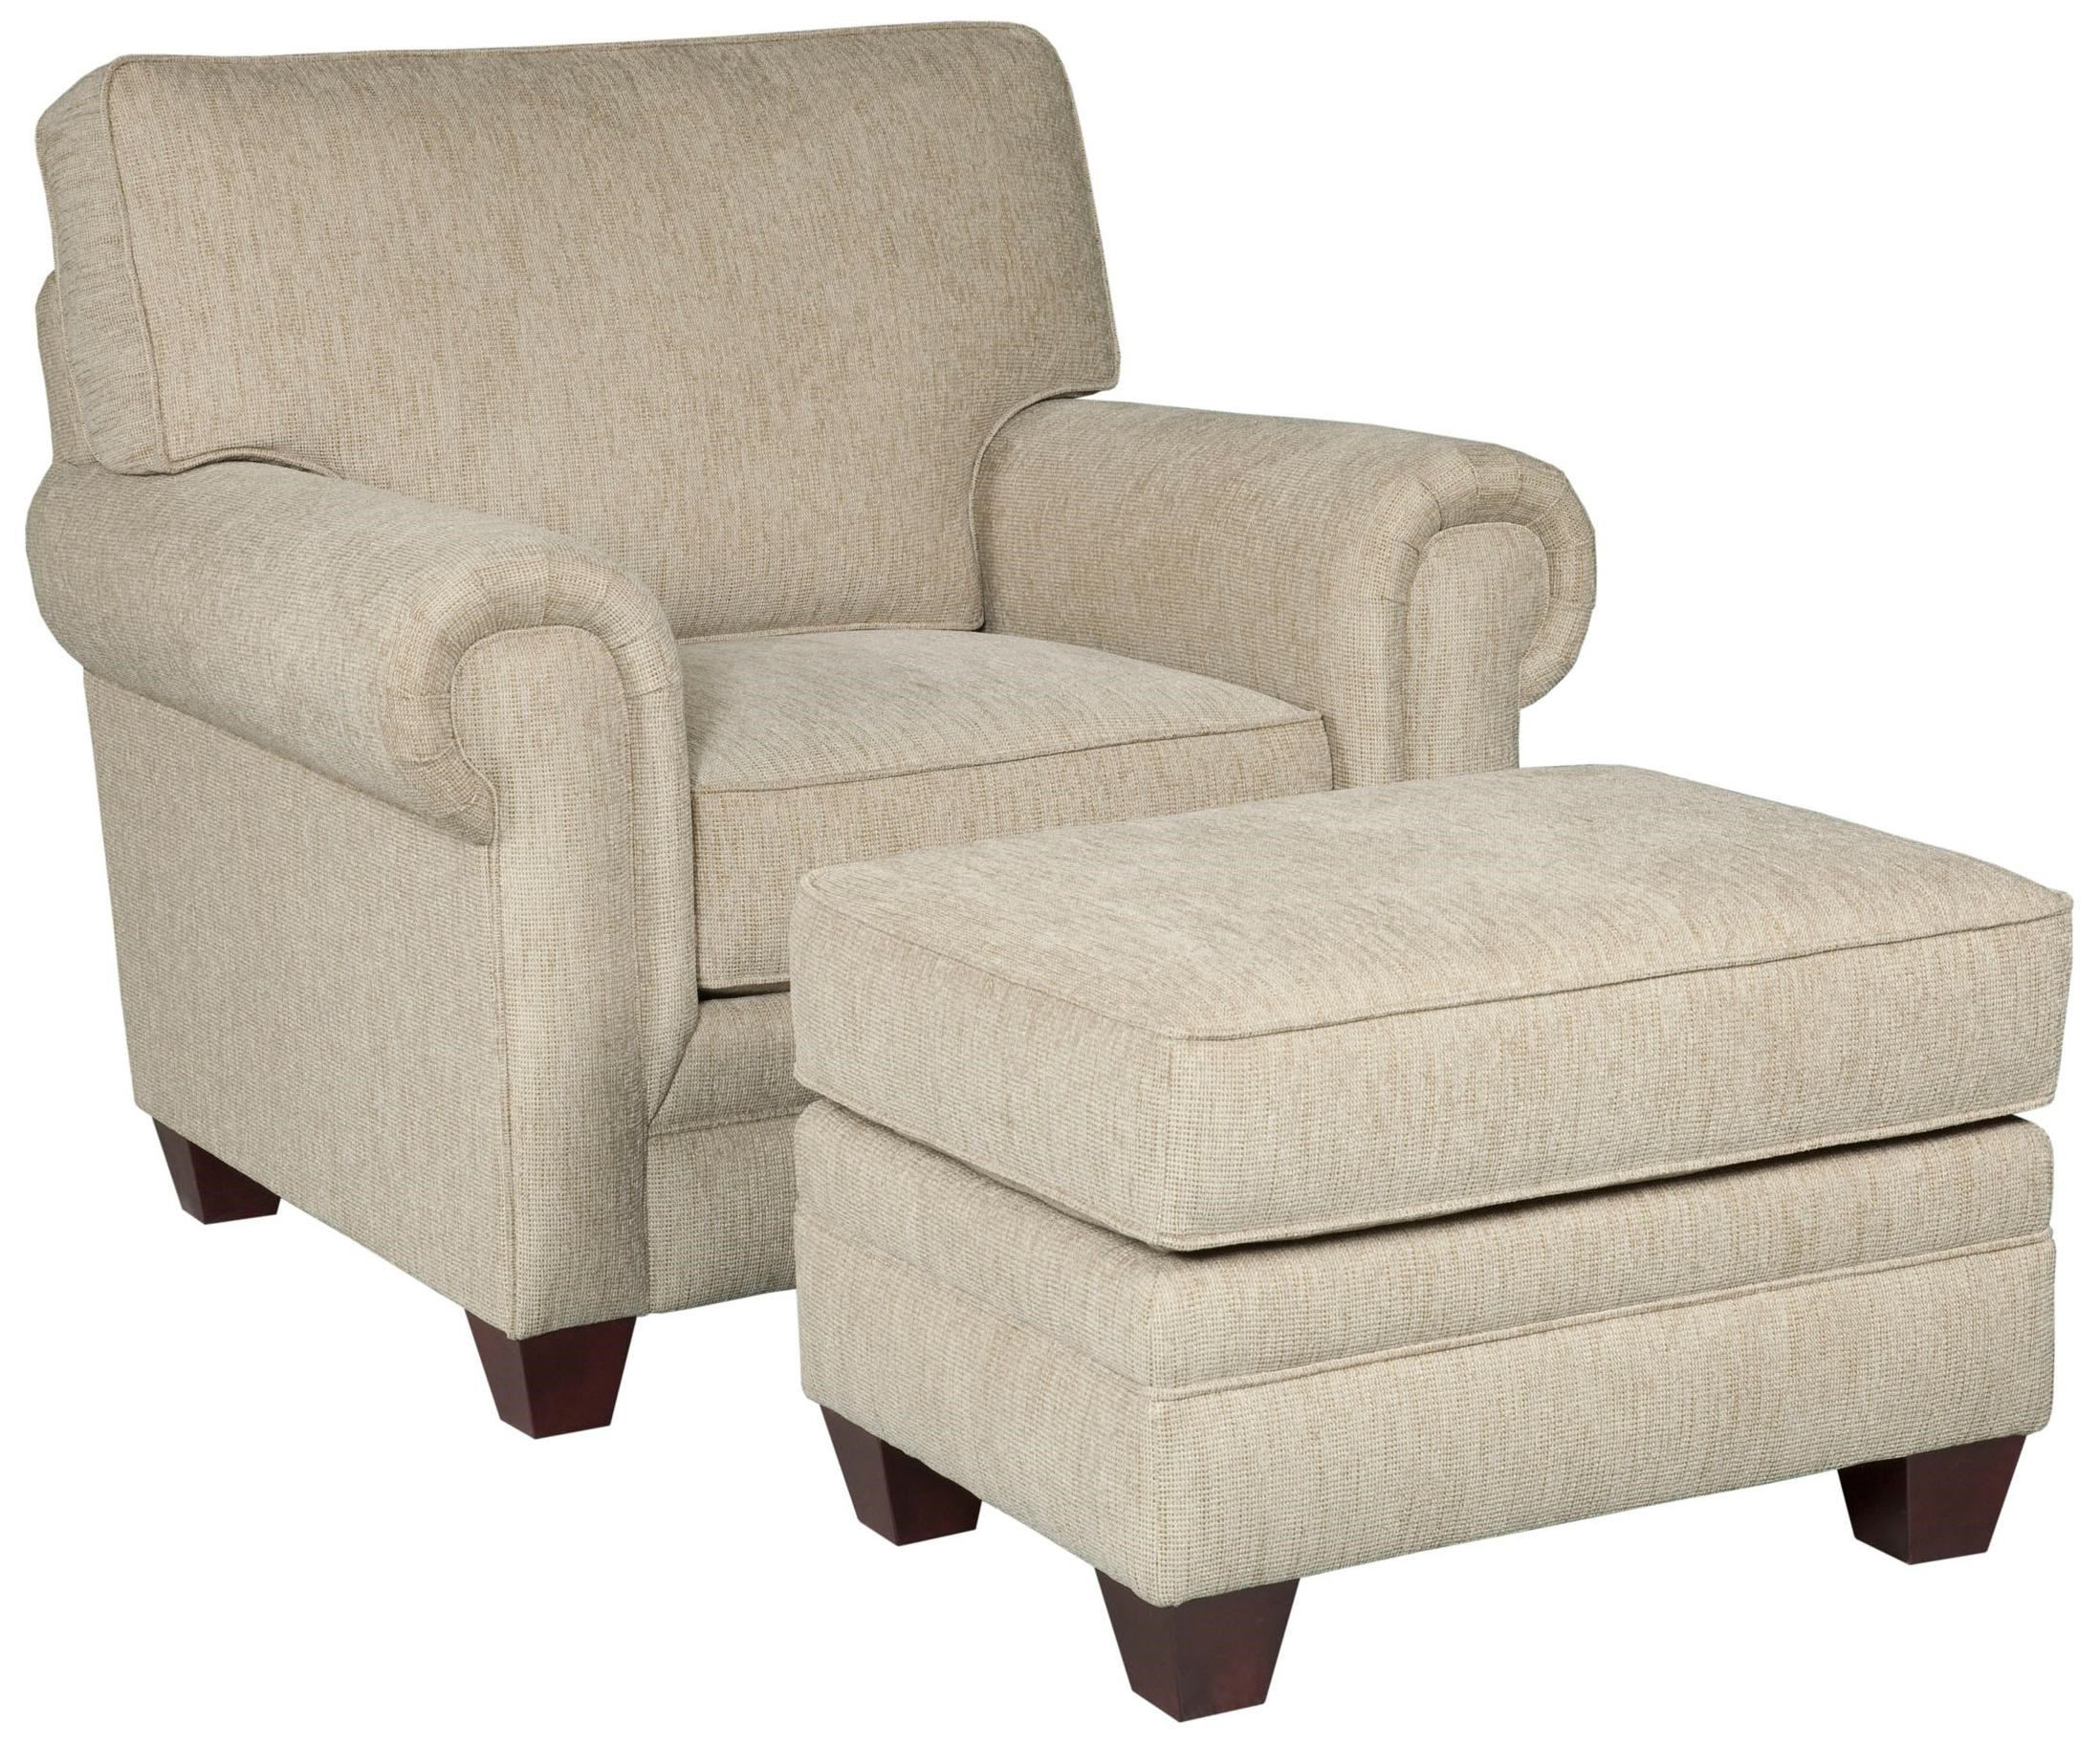 Upholstered Chair And Ottoman broyhill furniture monica transitional upholstered chair and